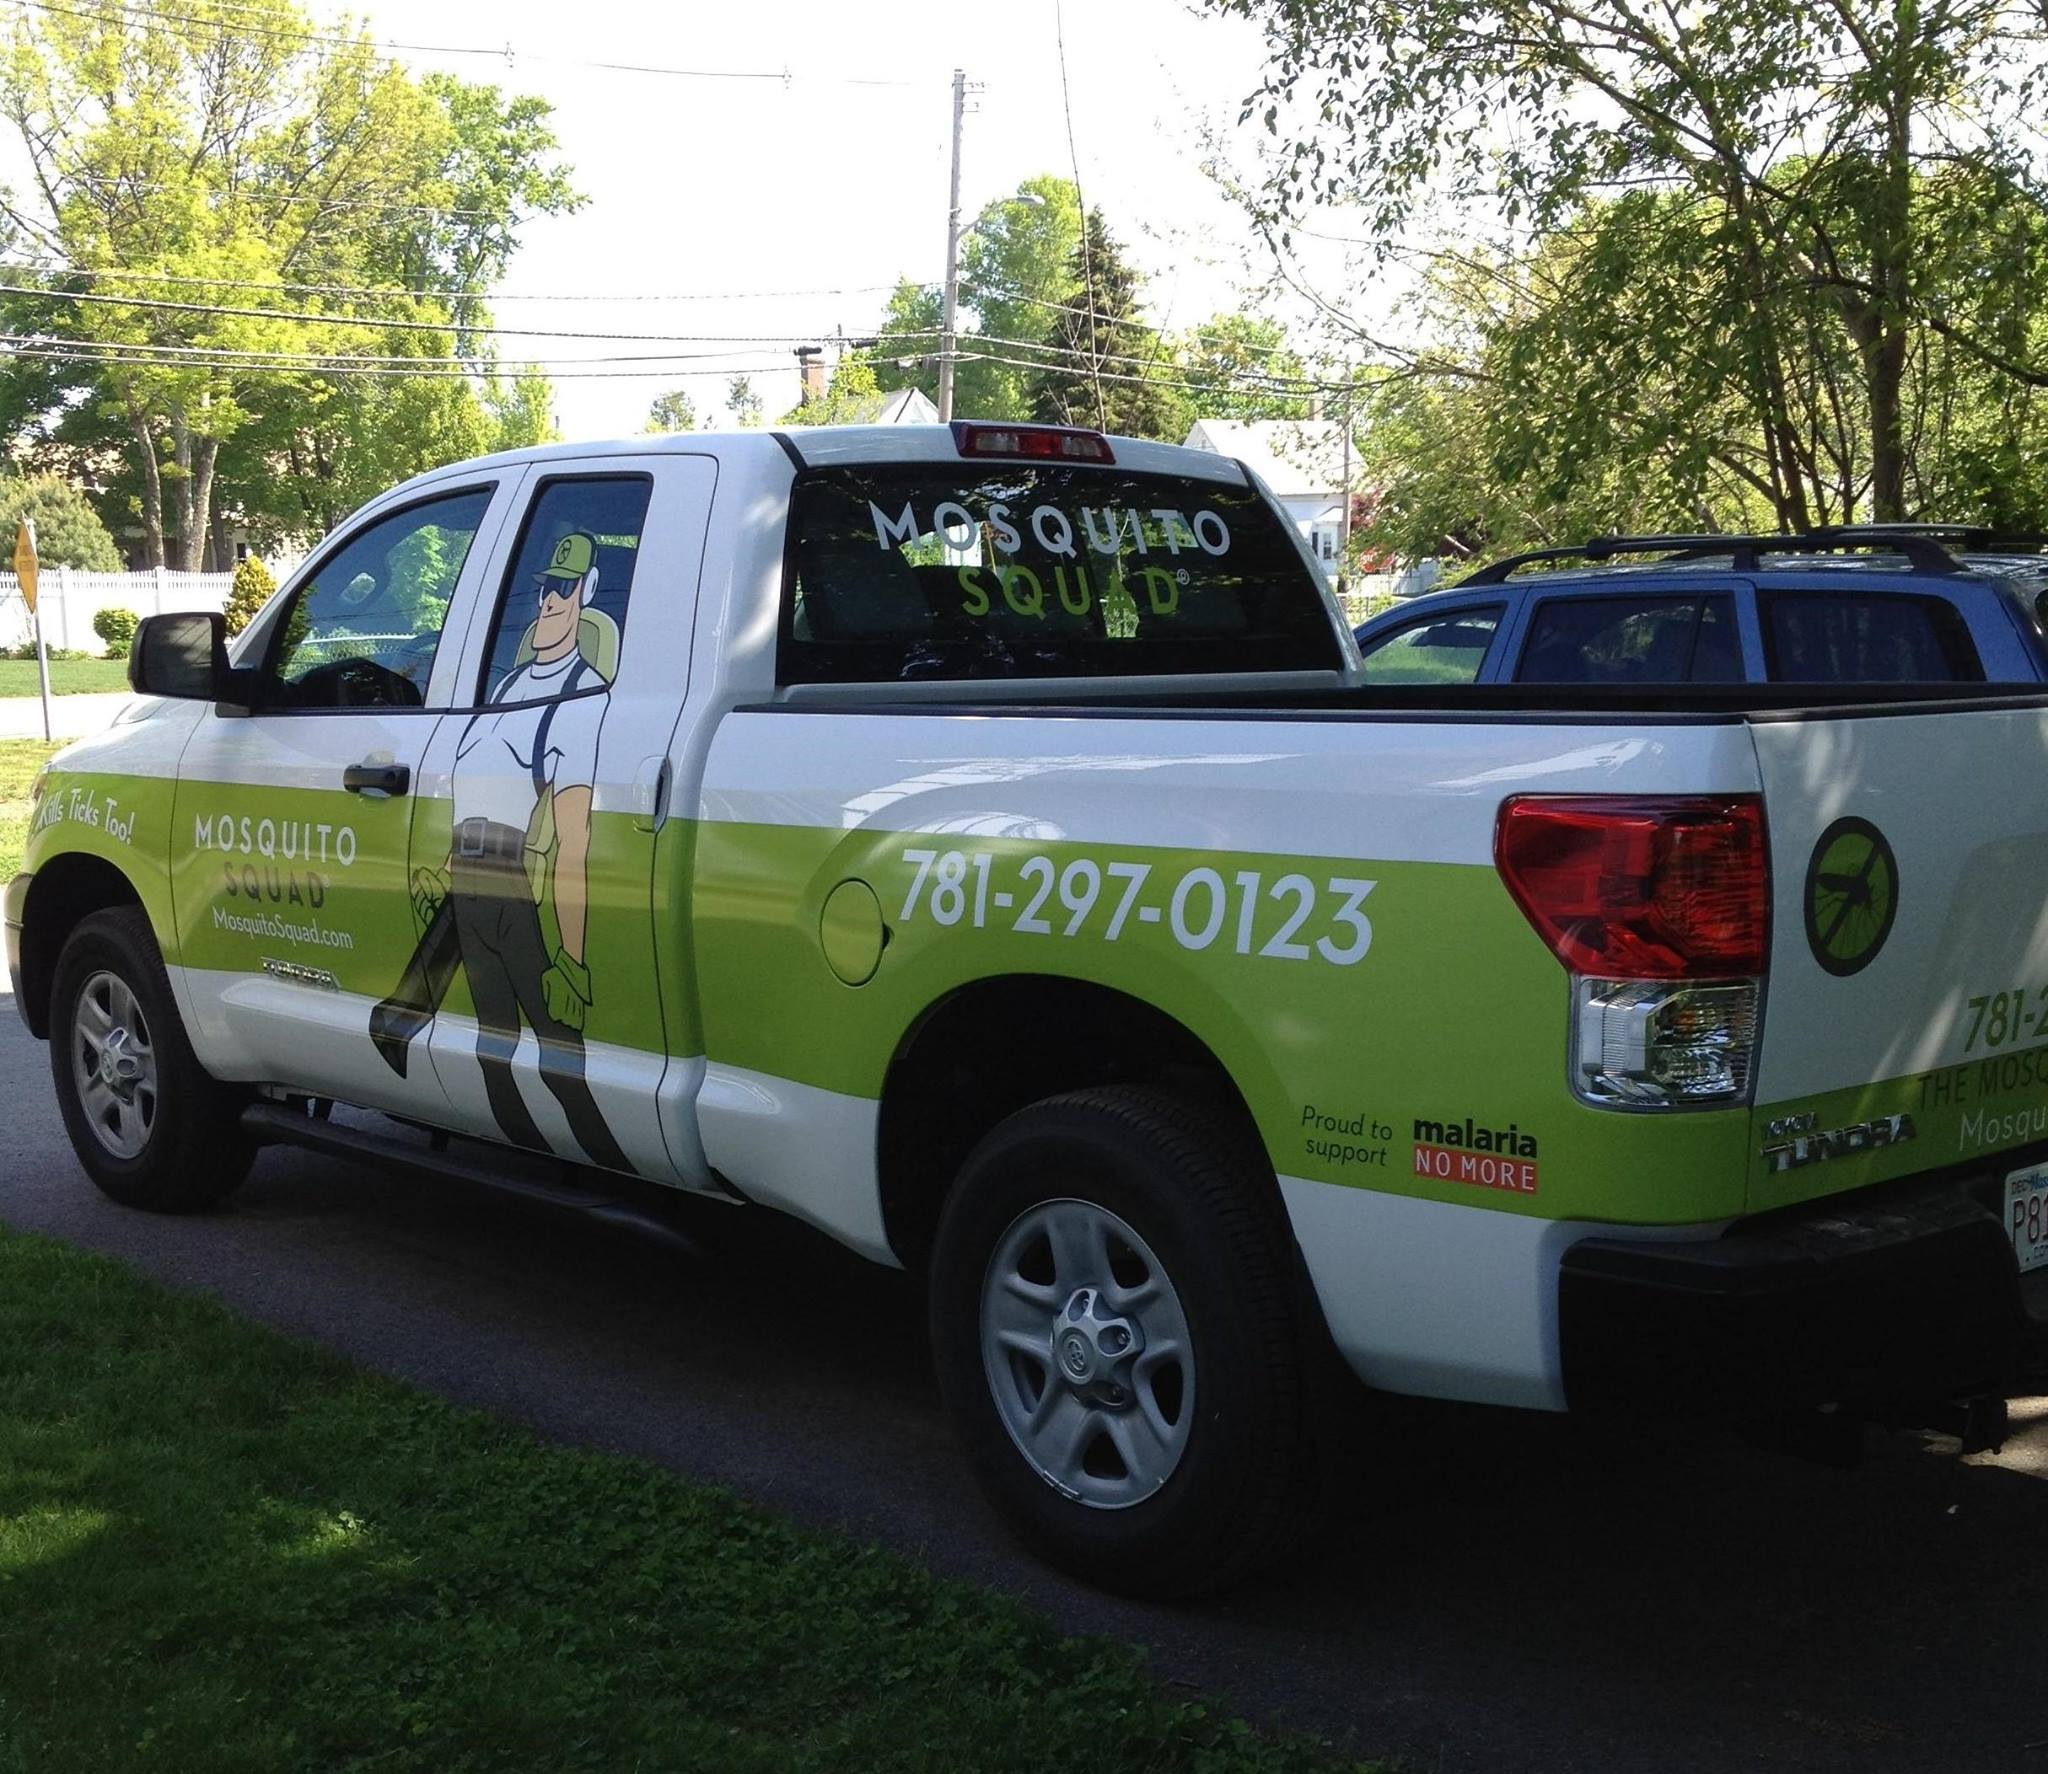 Mosquito Squad Truck - Call Today at 781-29-0123